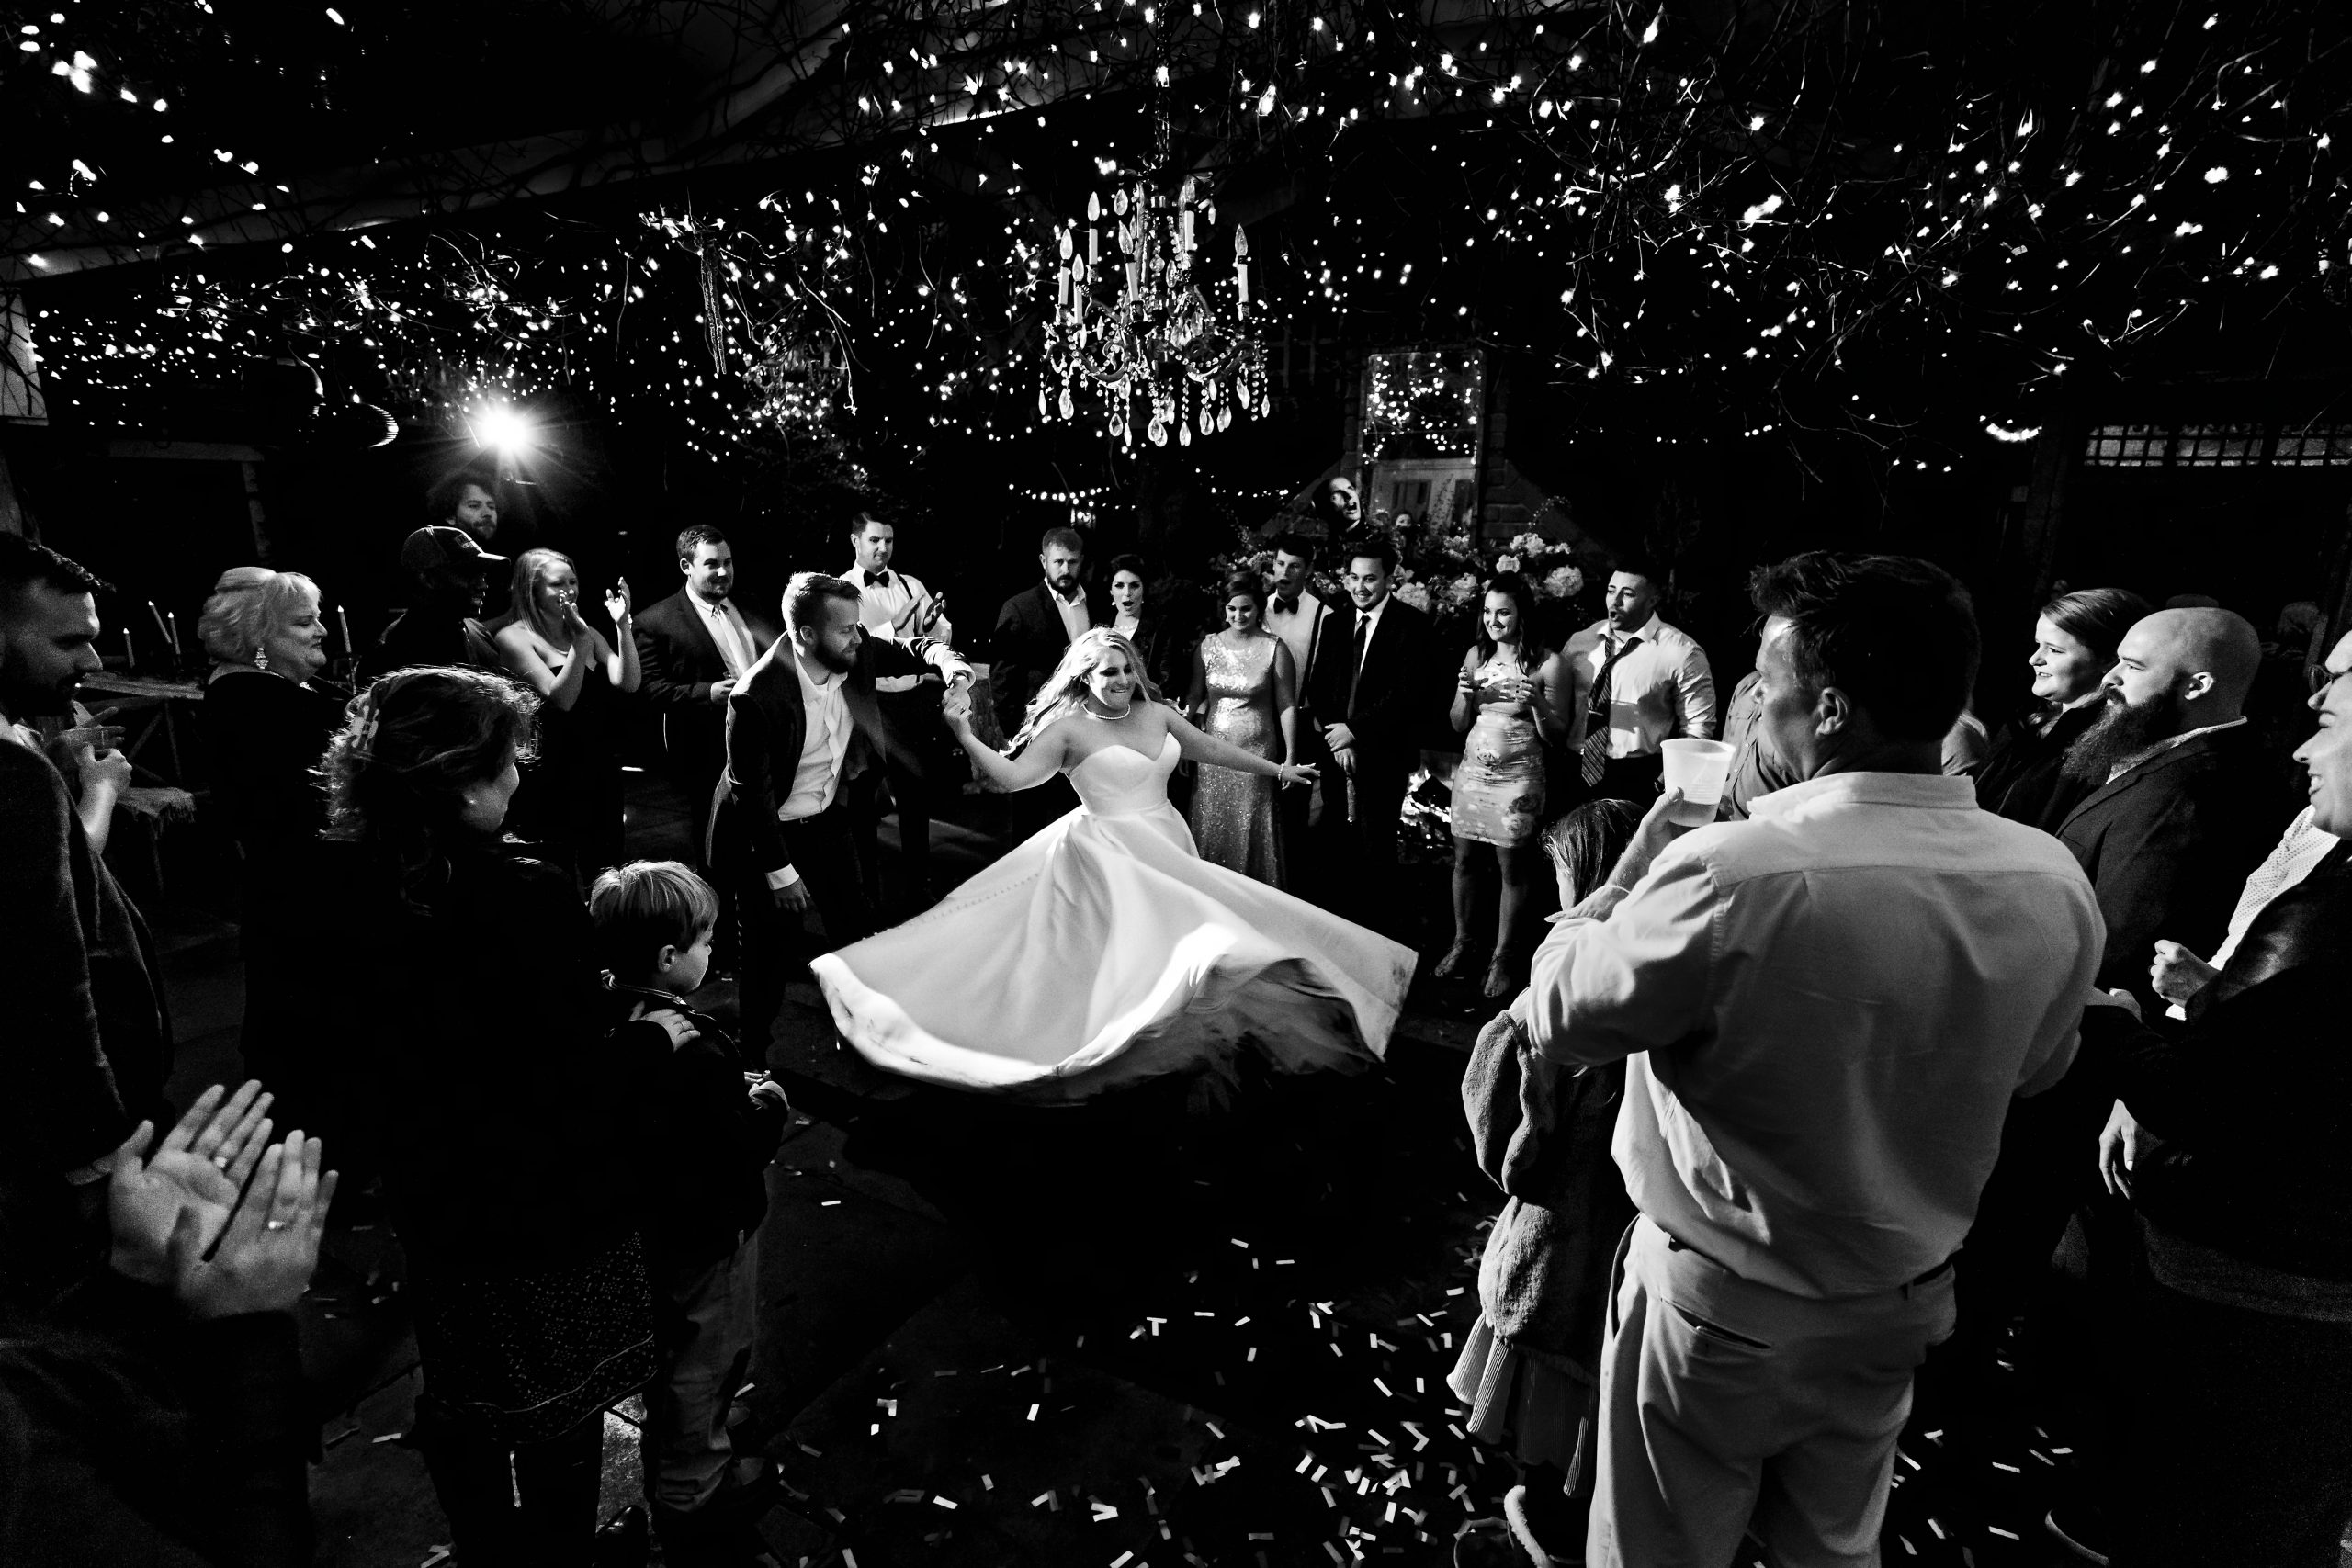 Bride and groom enjoy their first dance among friends and family.